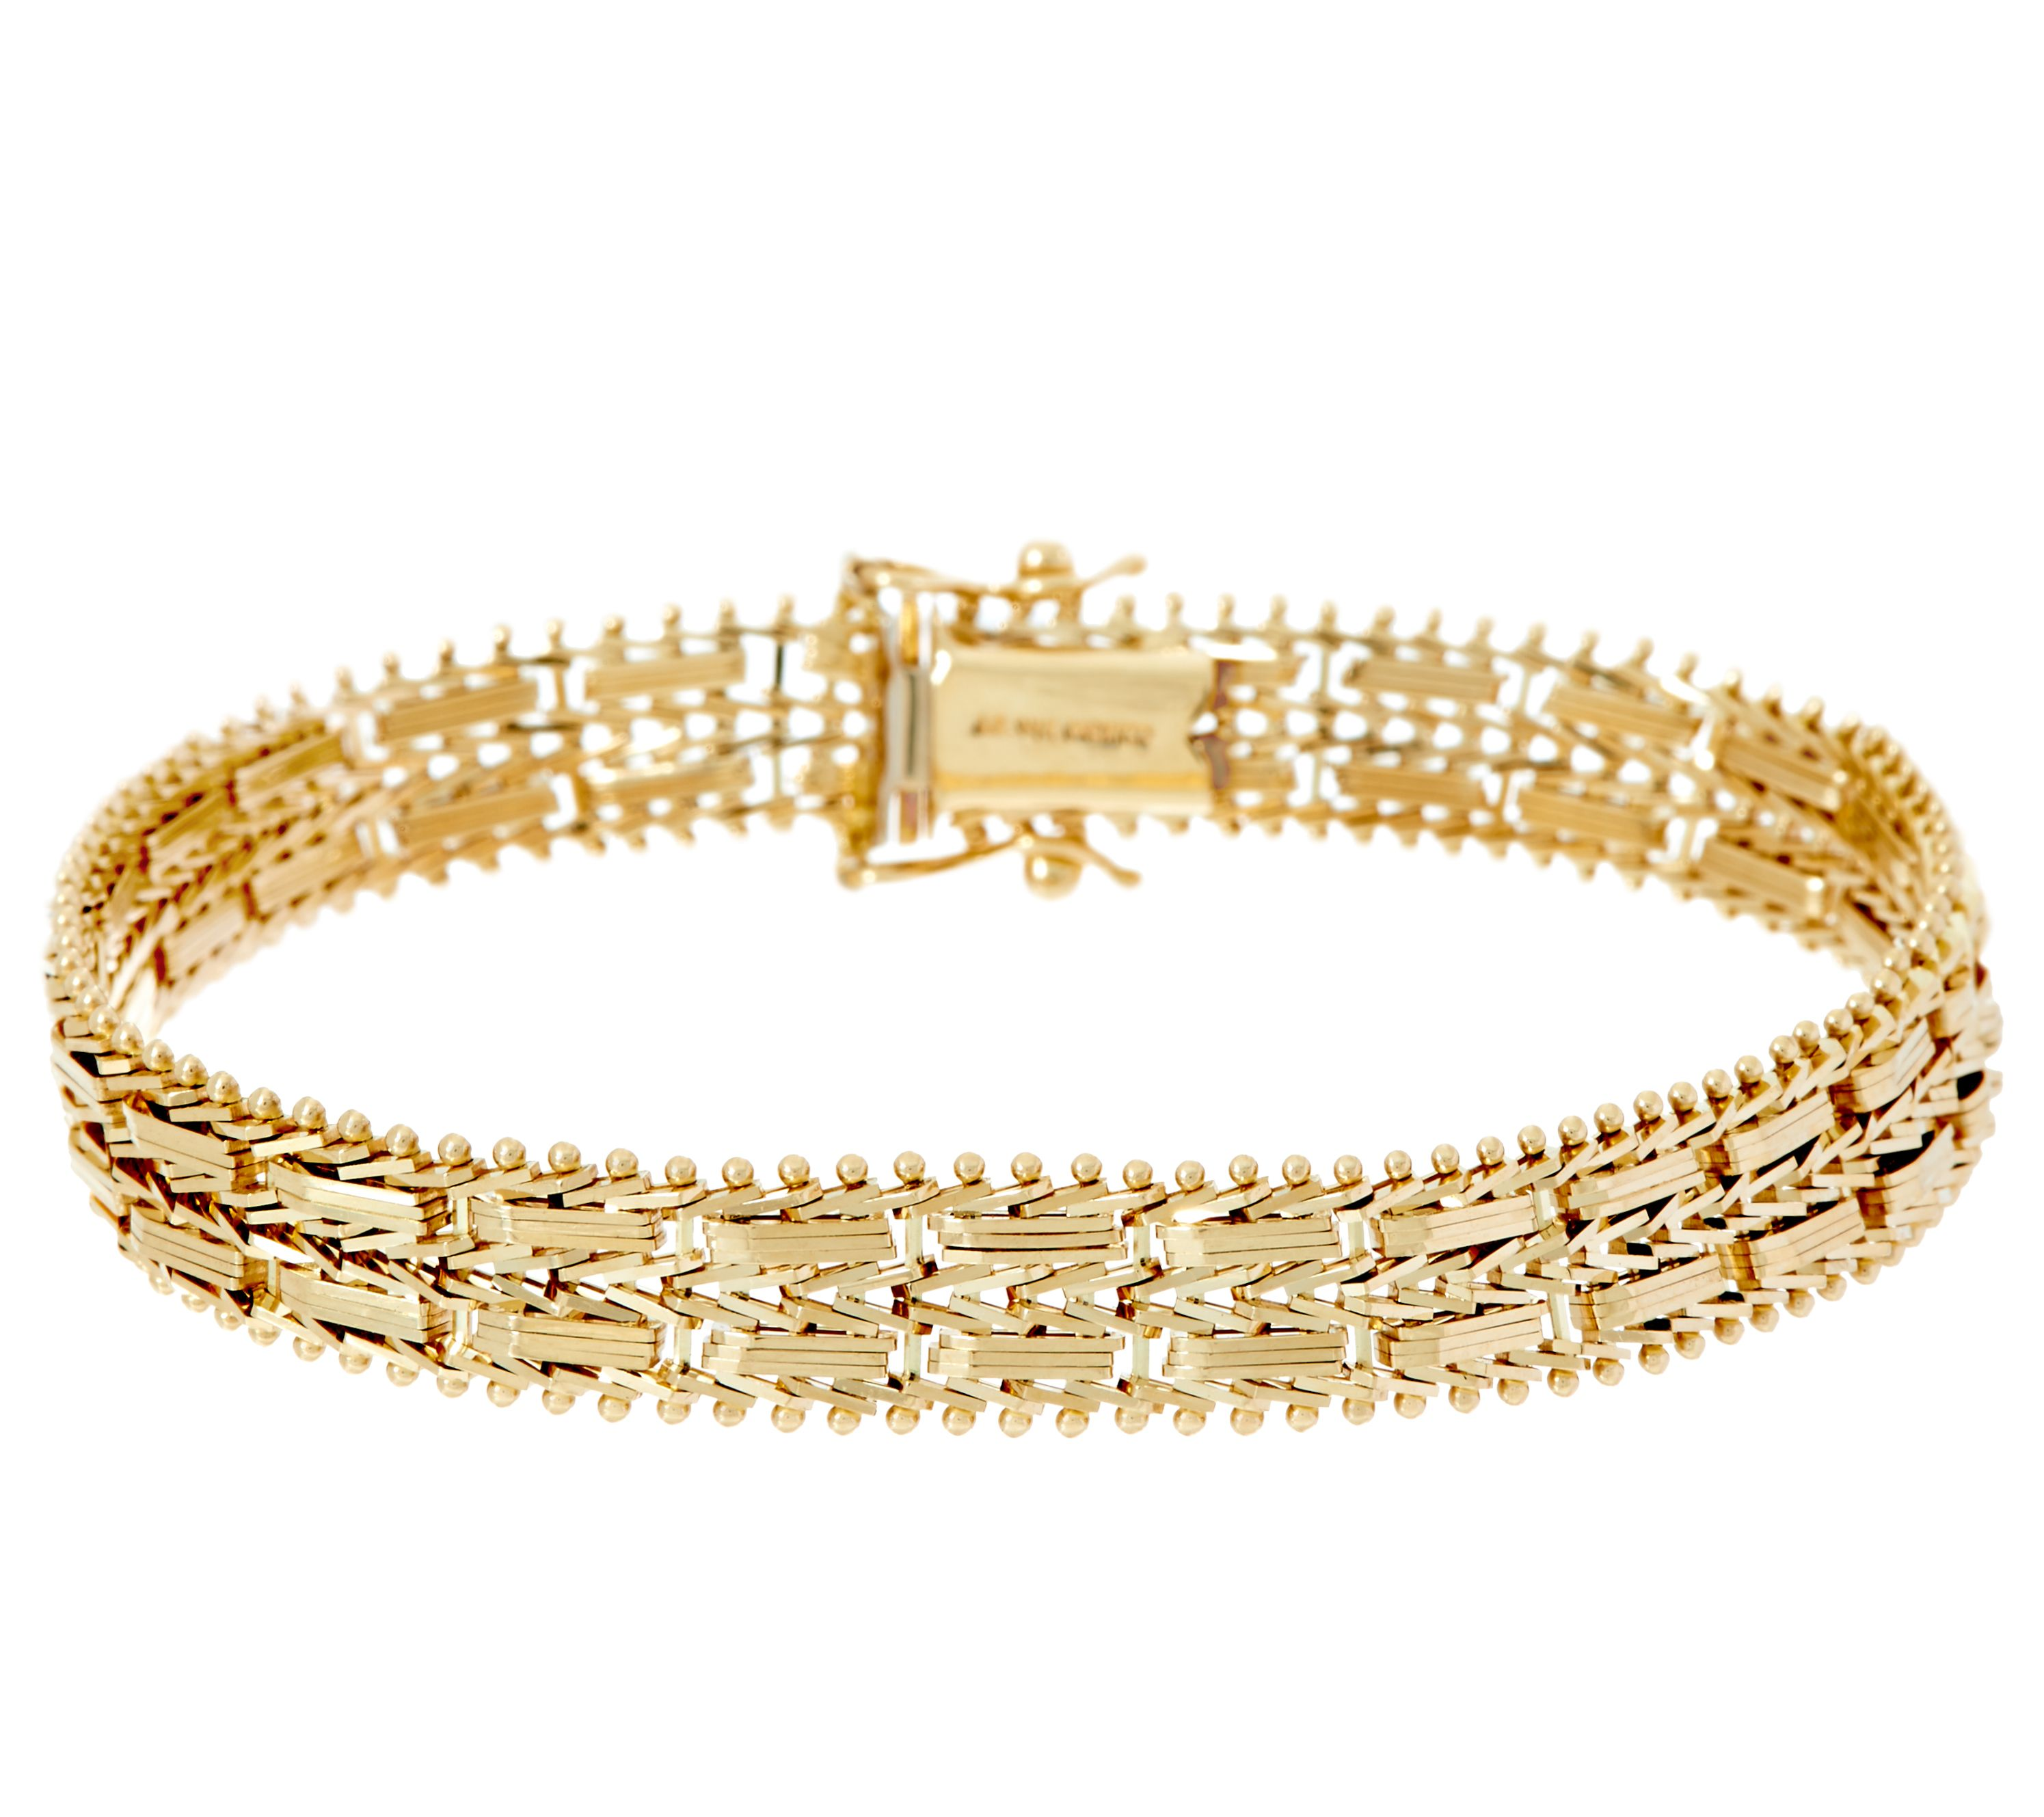 Imperial Gold 634 Mirror Bar Bracelet 14K 165g Page 1 QVCcom